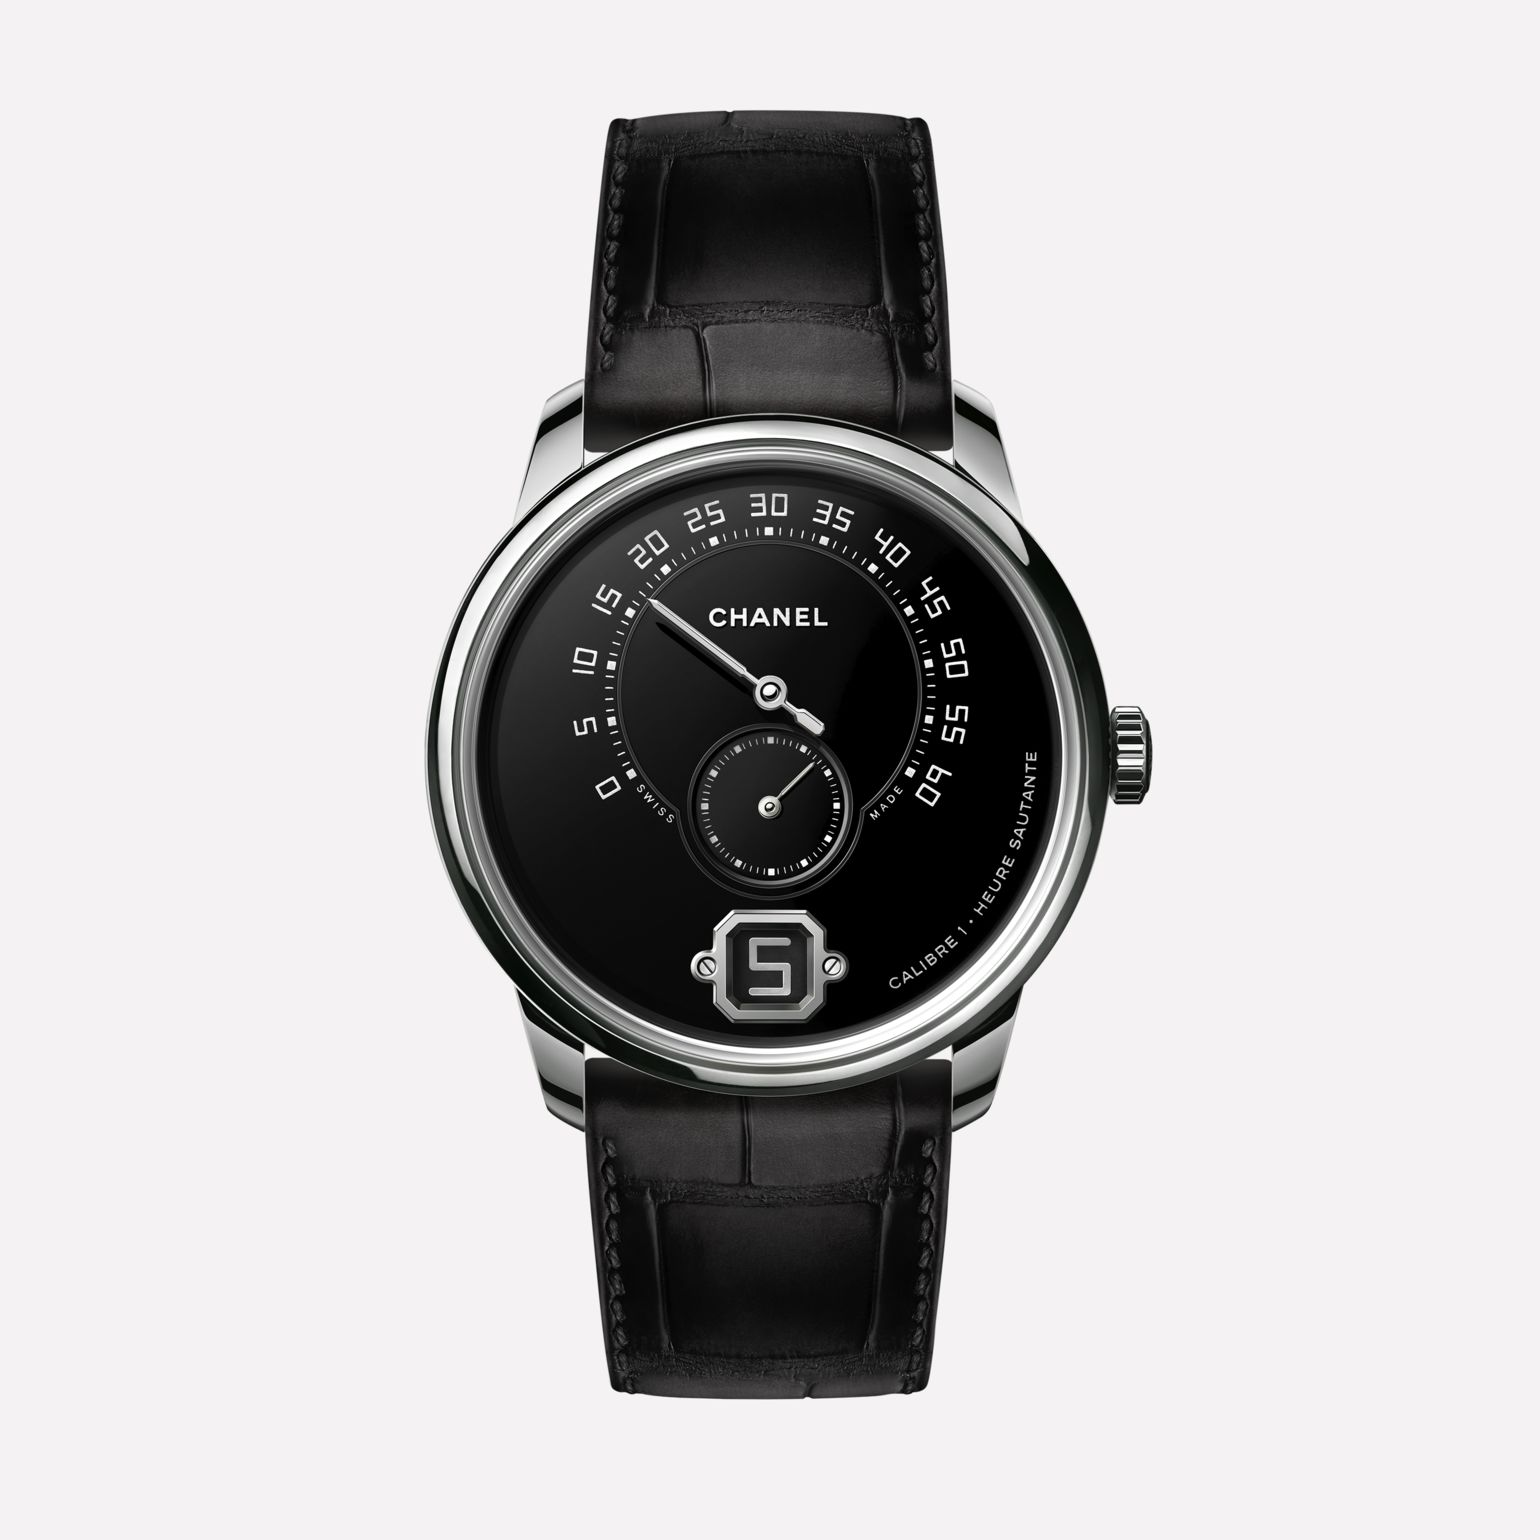 Monsieur Watch Platinum Grand Feu enamel dial with jumping hour, 240° retrograde minute and small second counter